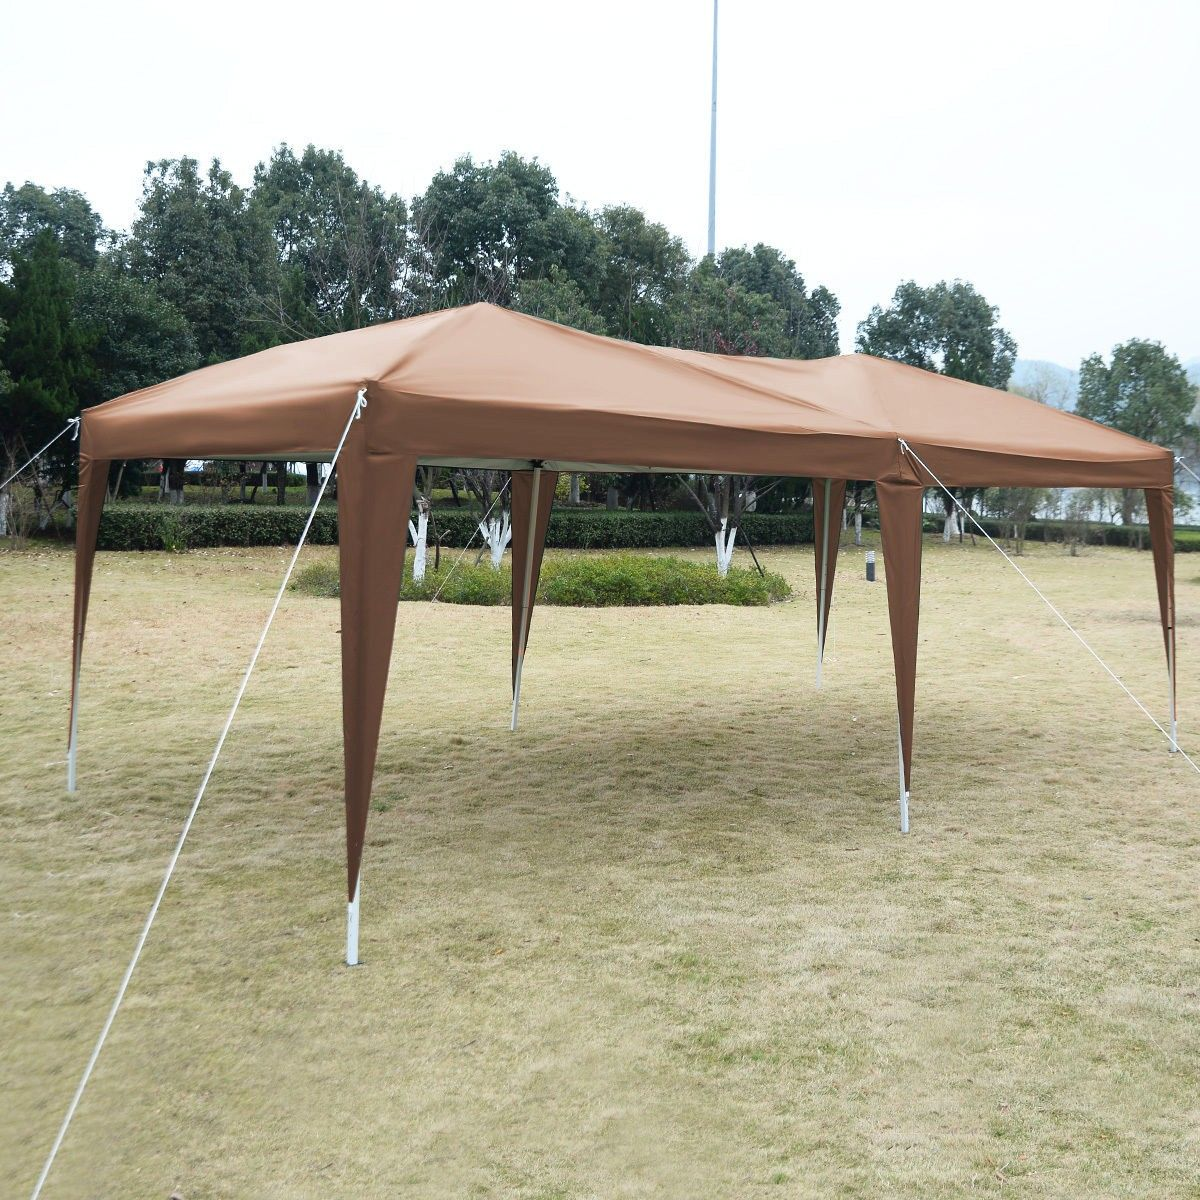 10 X 20 Ez Pop Up Folding Wedding Party Tent Cross Bar Gazebo Outdoor Pergola Garden Storage Shed